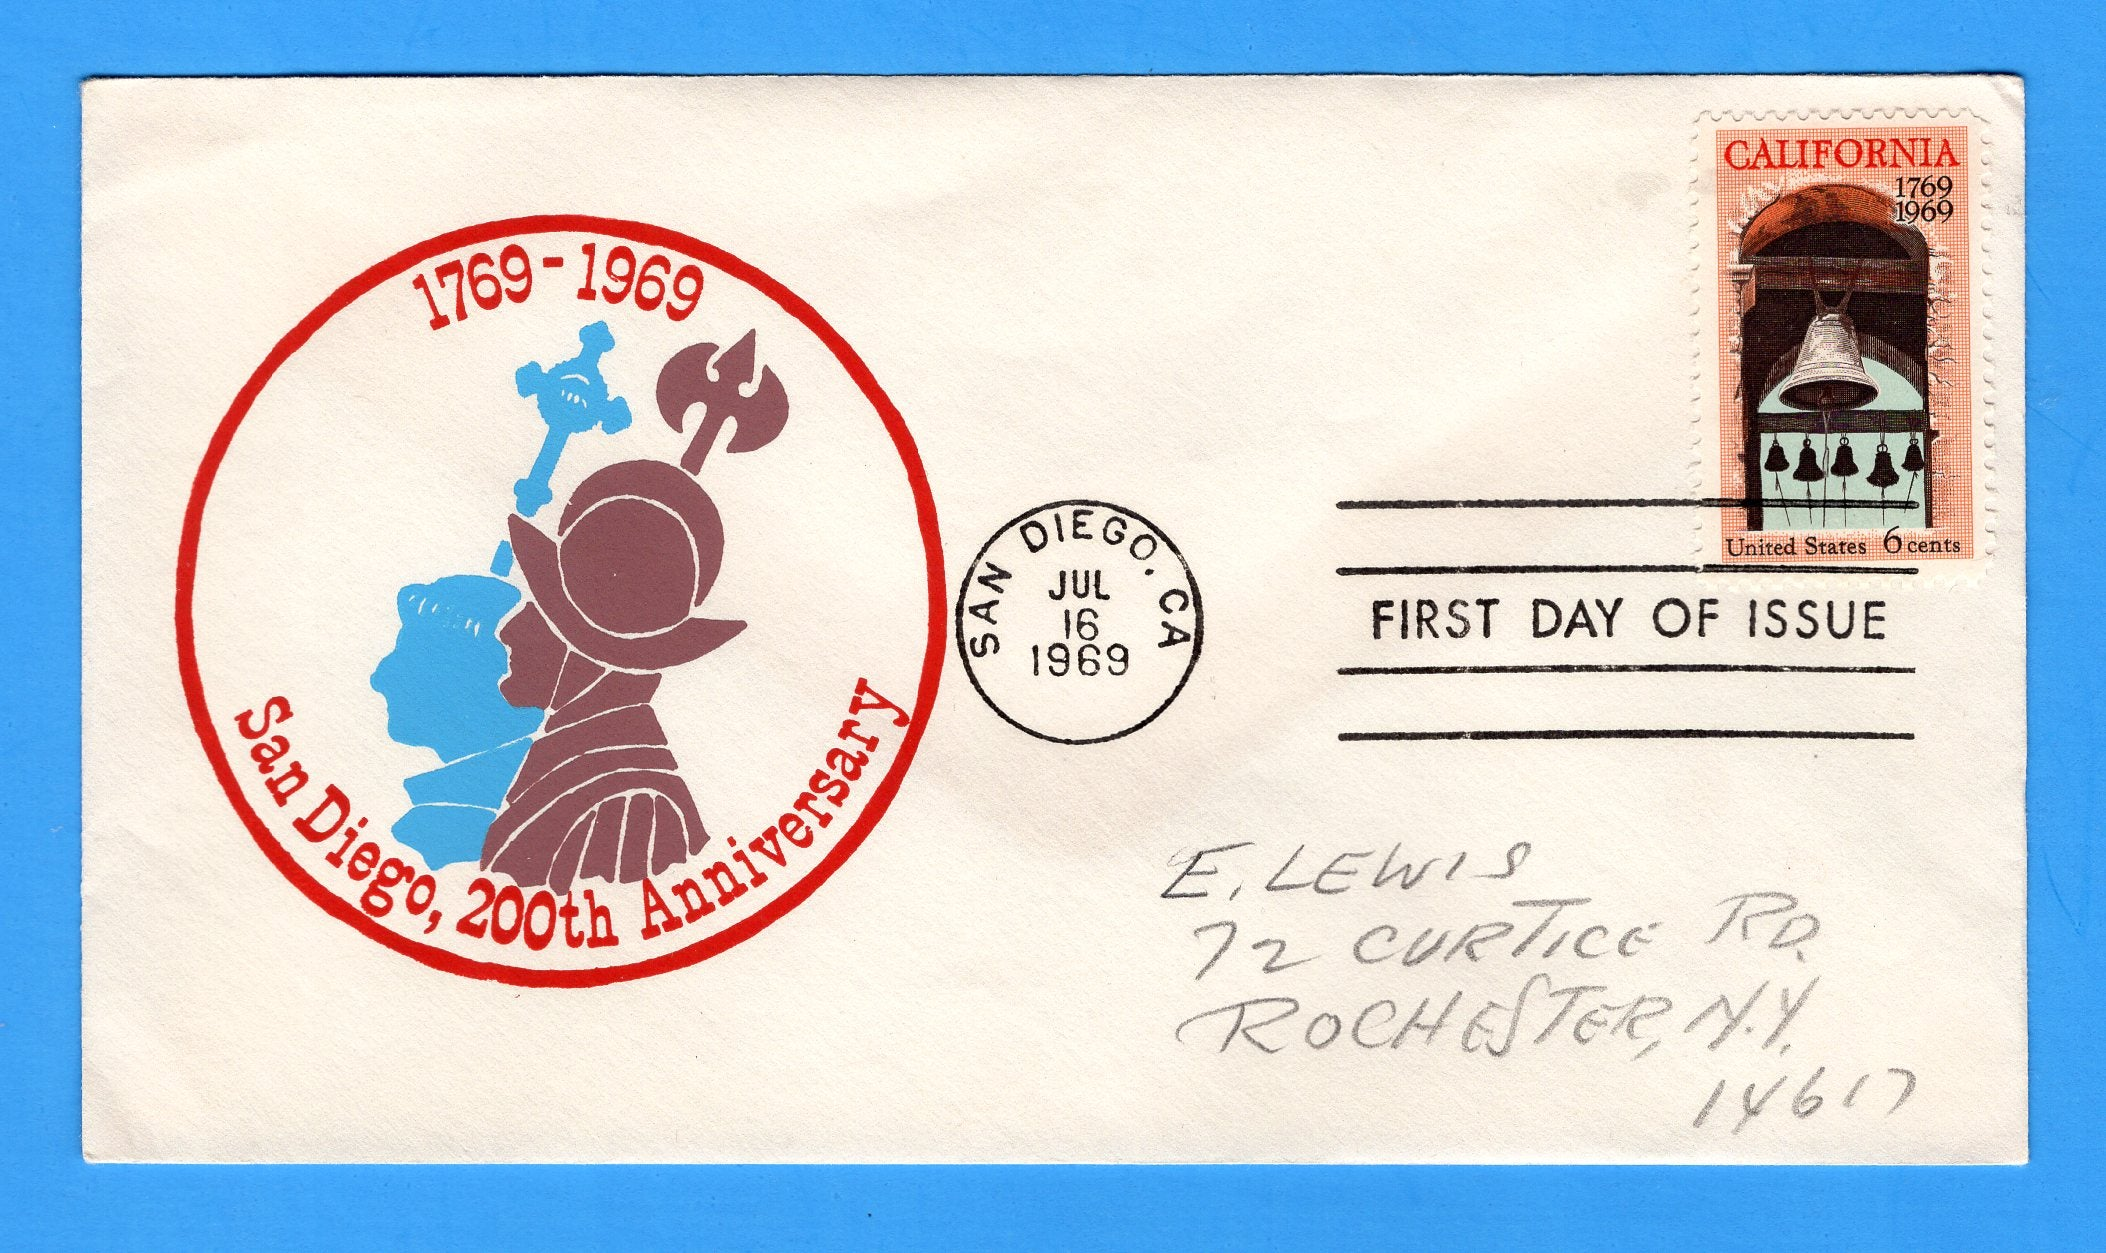 Scott 1373 6c California Settlement Silk Screen First Day Cover by Eric Lewis - Very Scarce - Only Thirty Known Copies